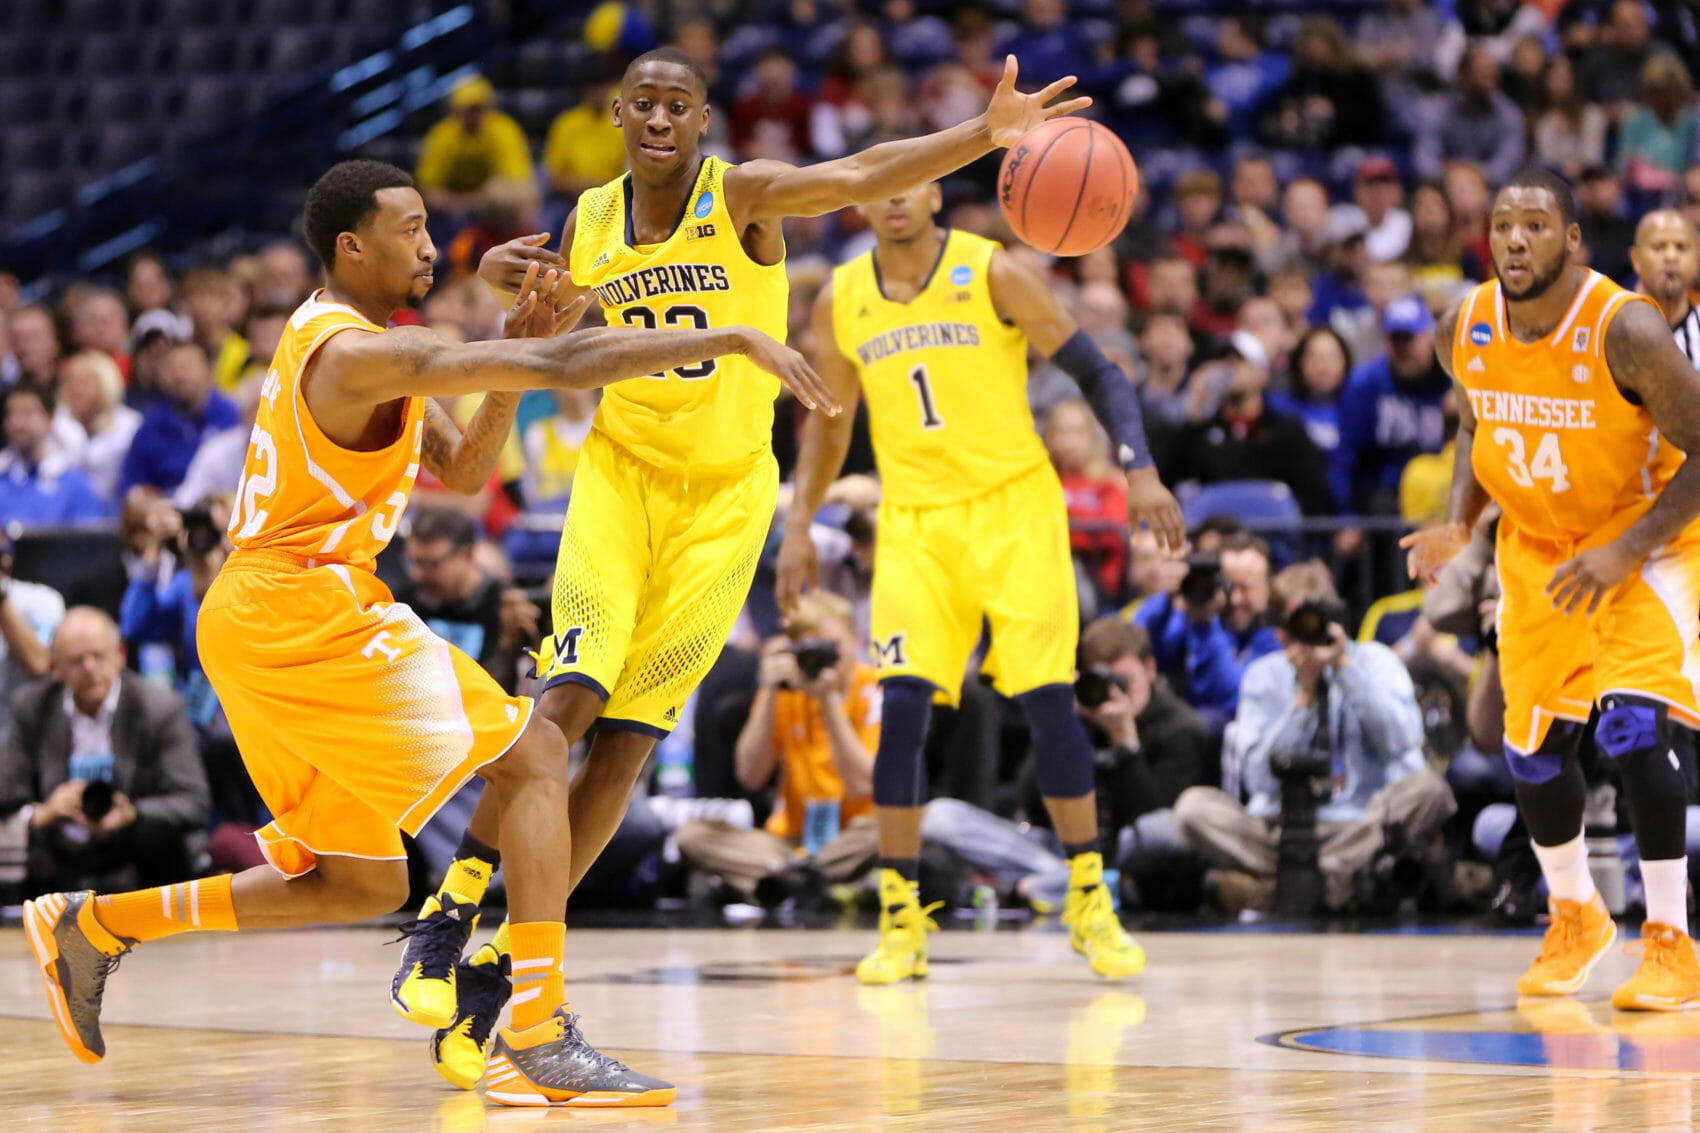 Michigan 73, Tennessee 71-6